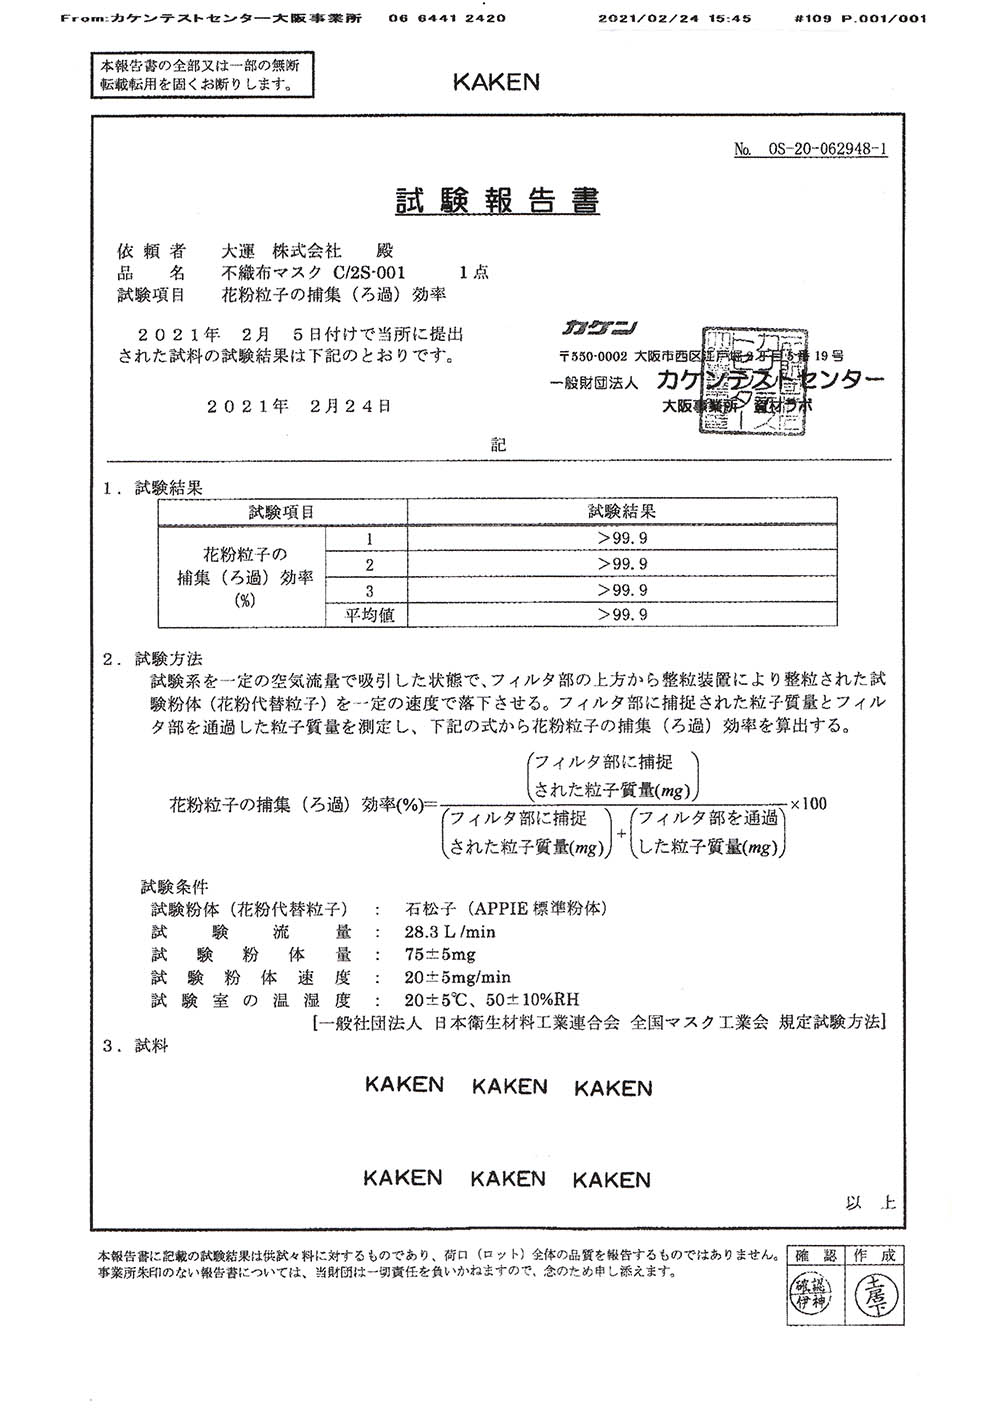 【A】〈送料無料〉【40箱セット】世界標準の高品質マスク 三層不織布マスク ソフト平ゴム1箱50枚入 大人用